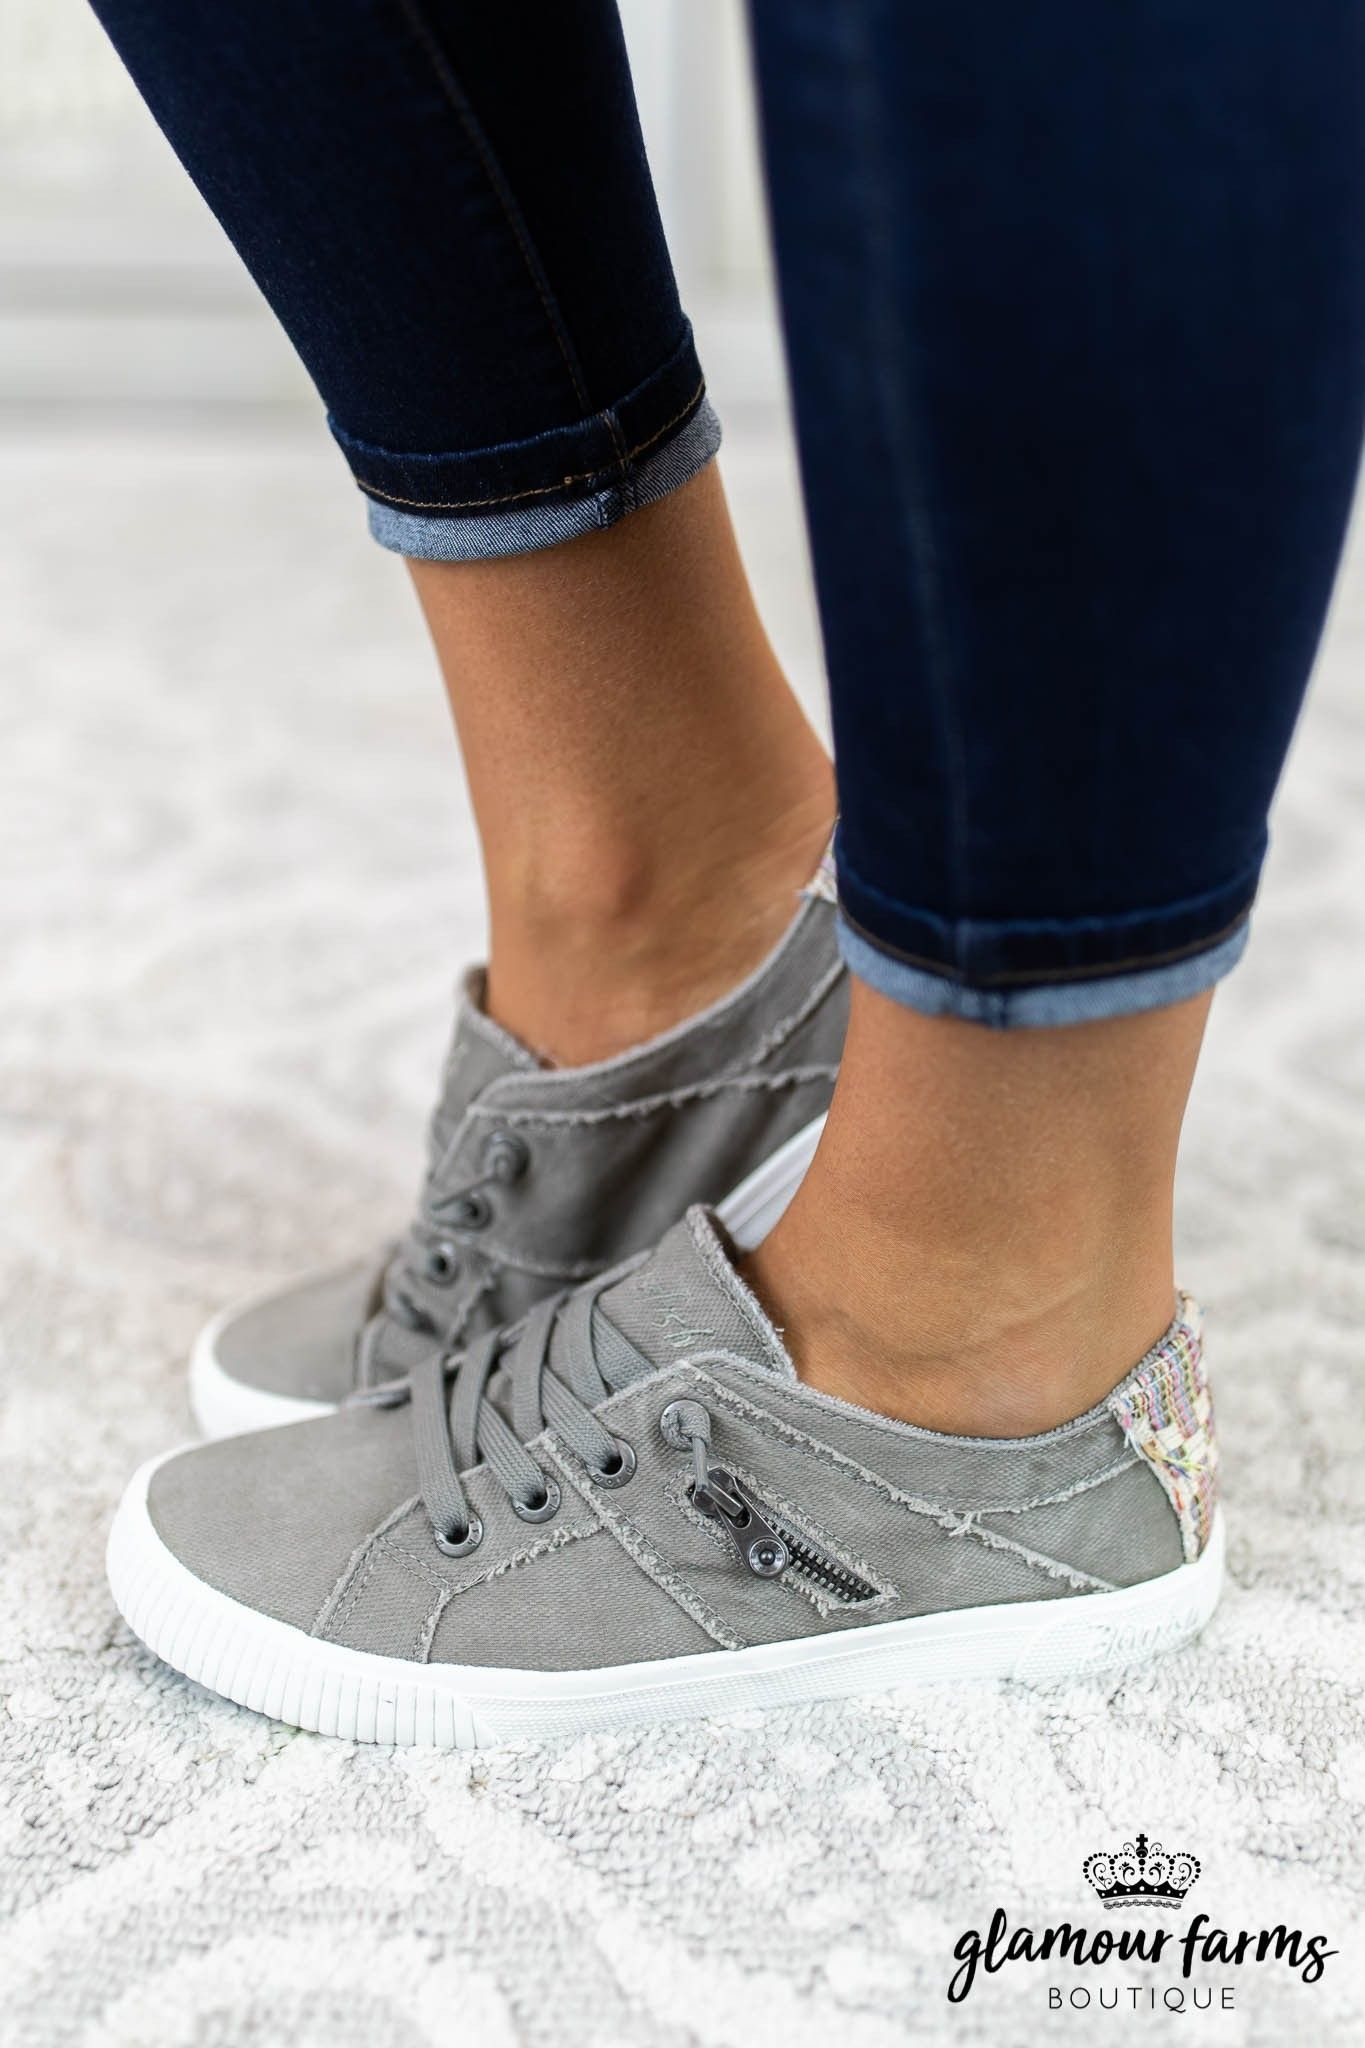 b857d614ddfa Fruit Hipster Sneaker - Gray  glamourfarms  boutique  shopping  trends   spring